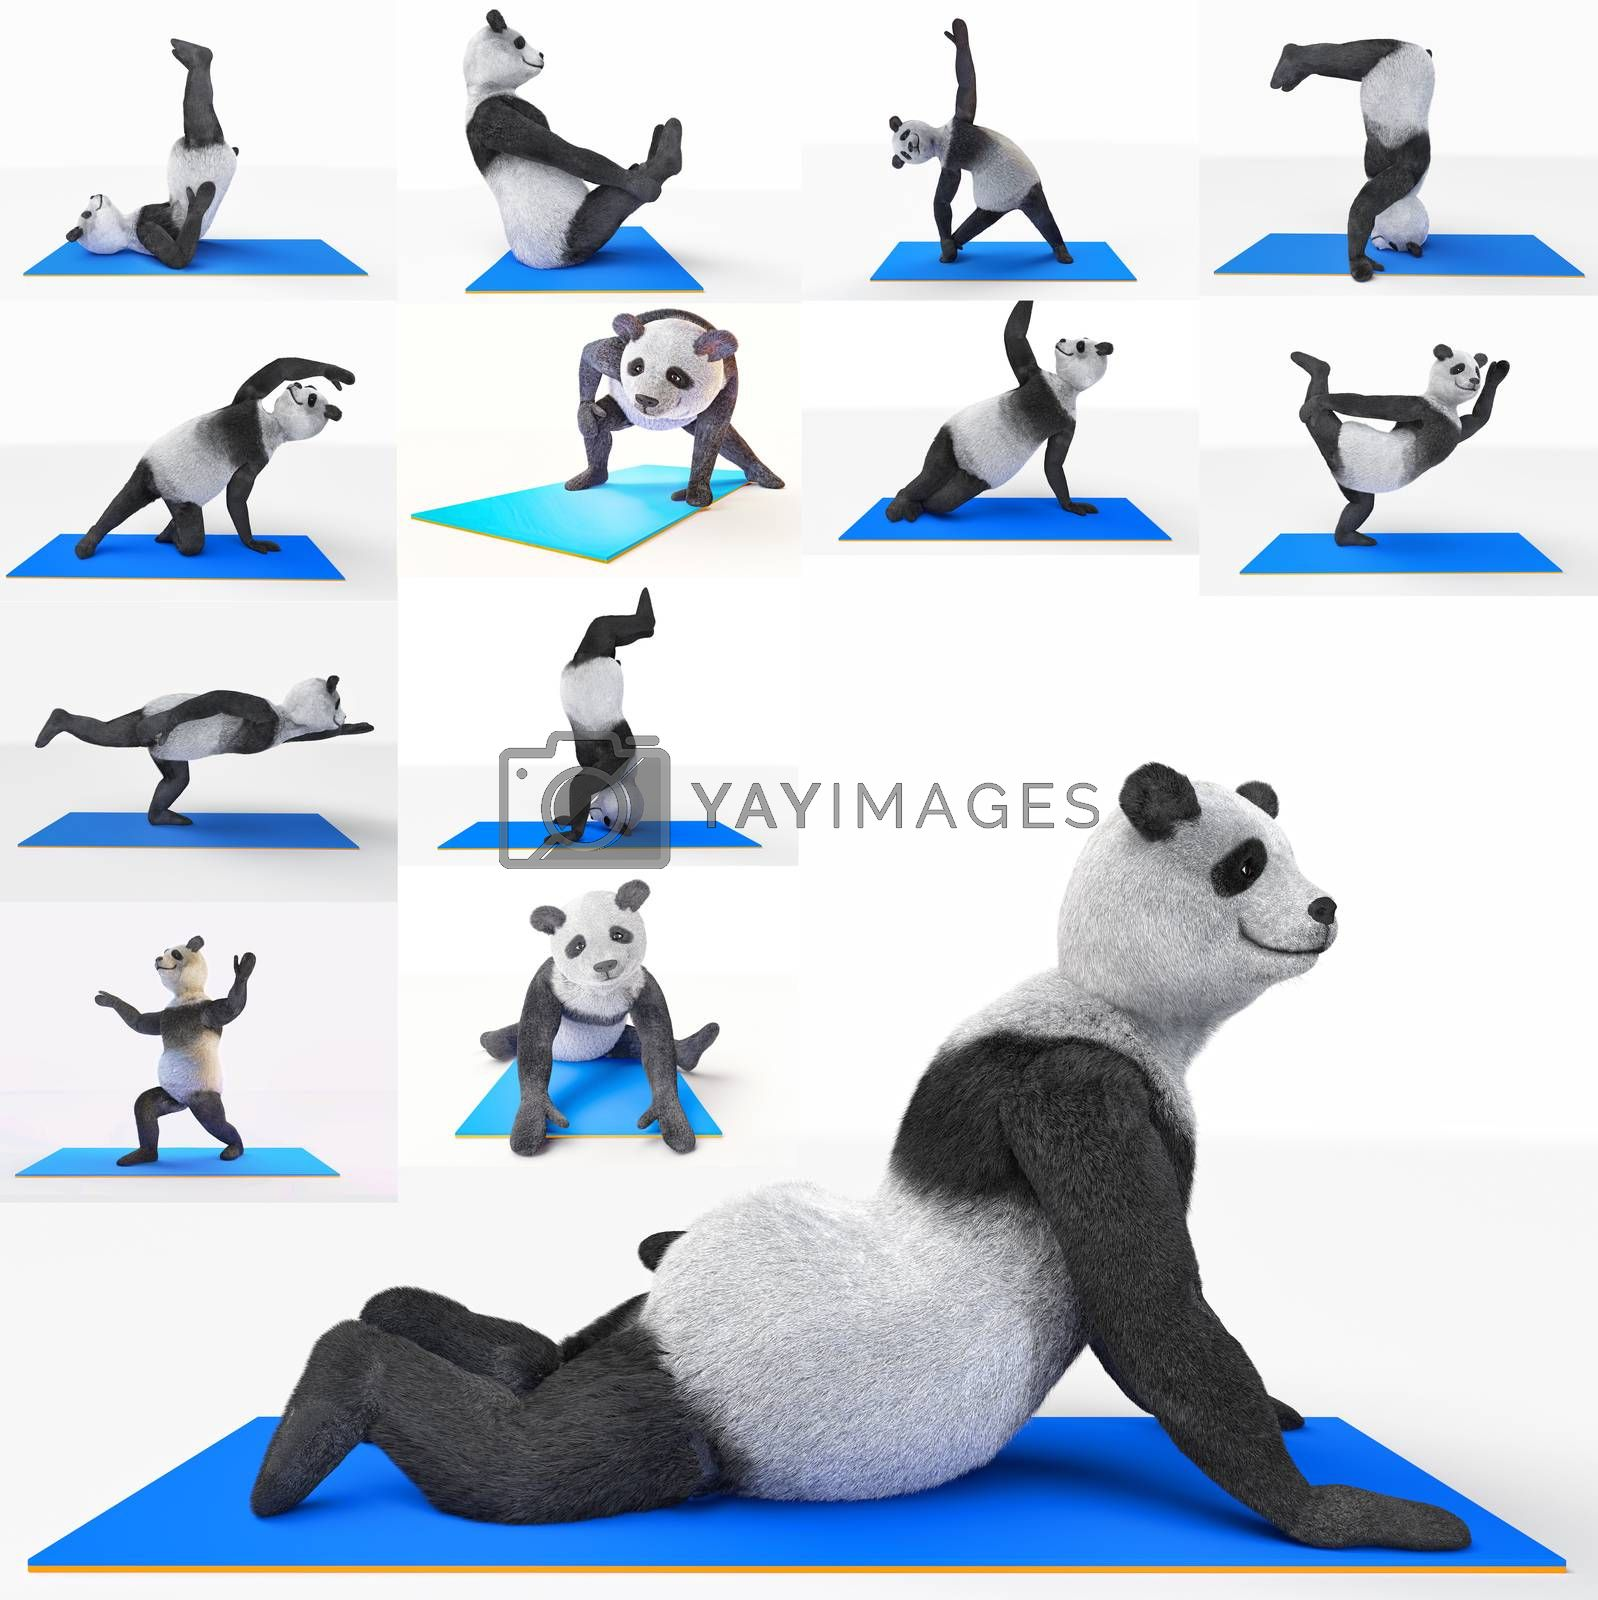 animal panda athlete sportsman doing yoga stretching workout. protagonist character collage collection athletic sports. set illustrations poses sports, strengthening muscular system, improving health